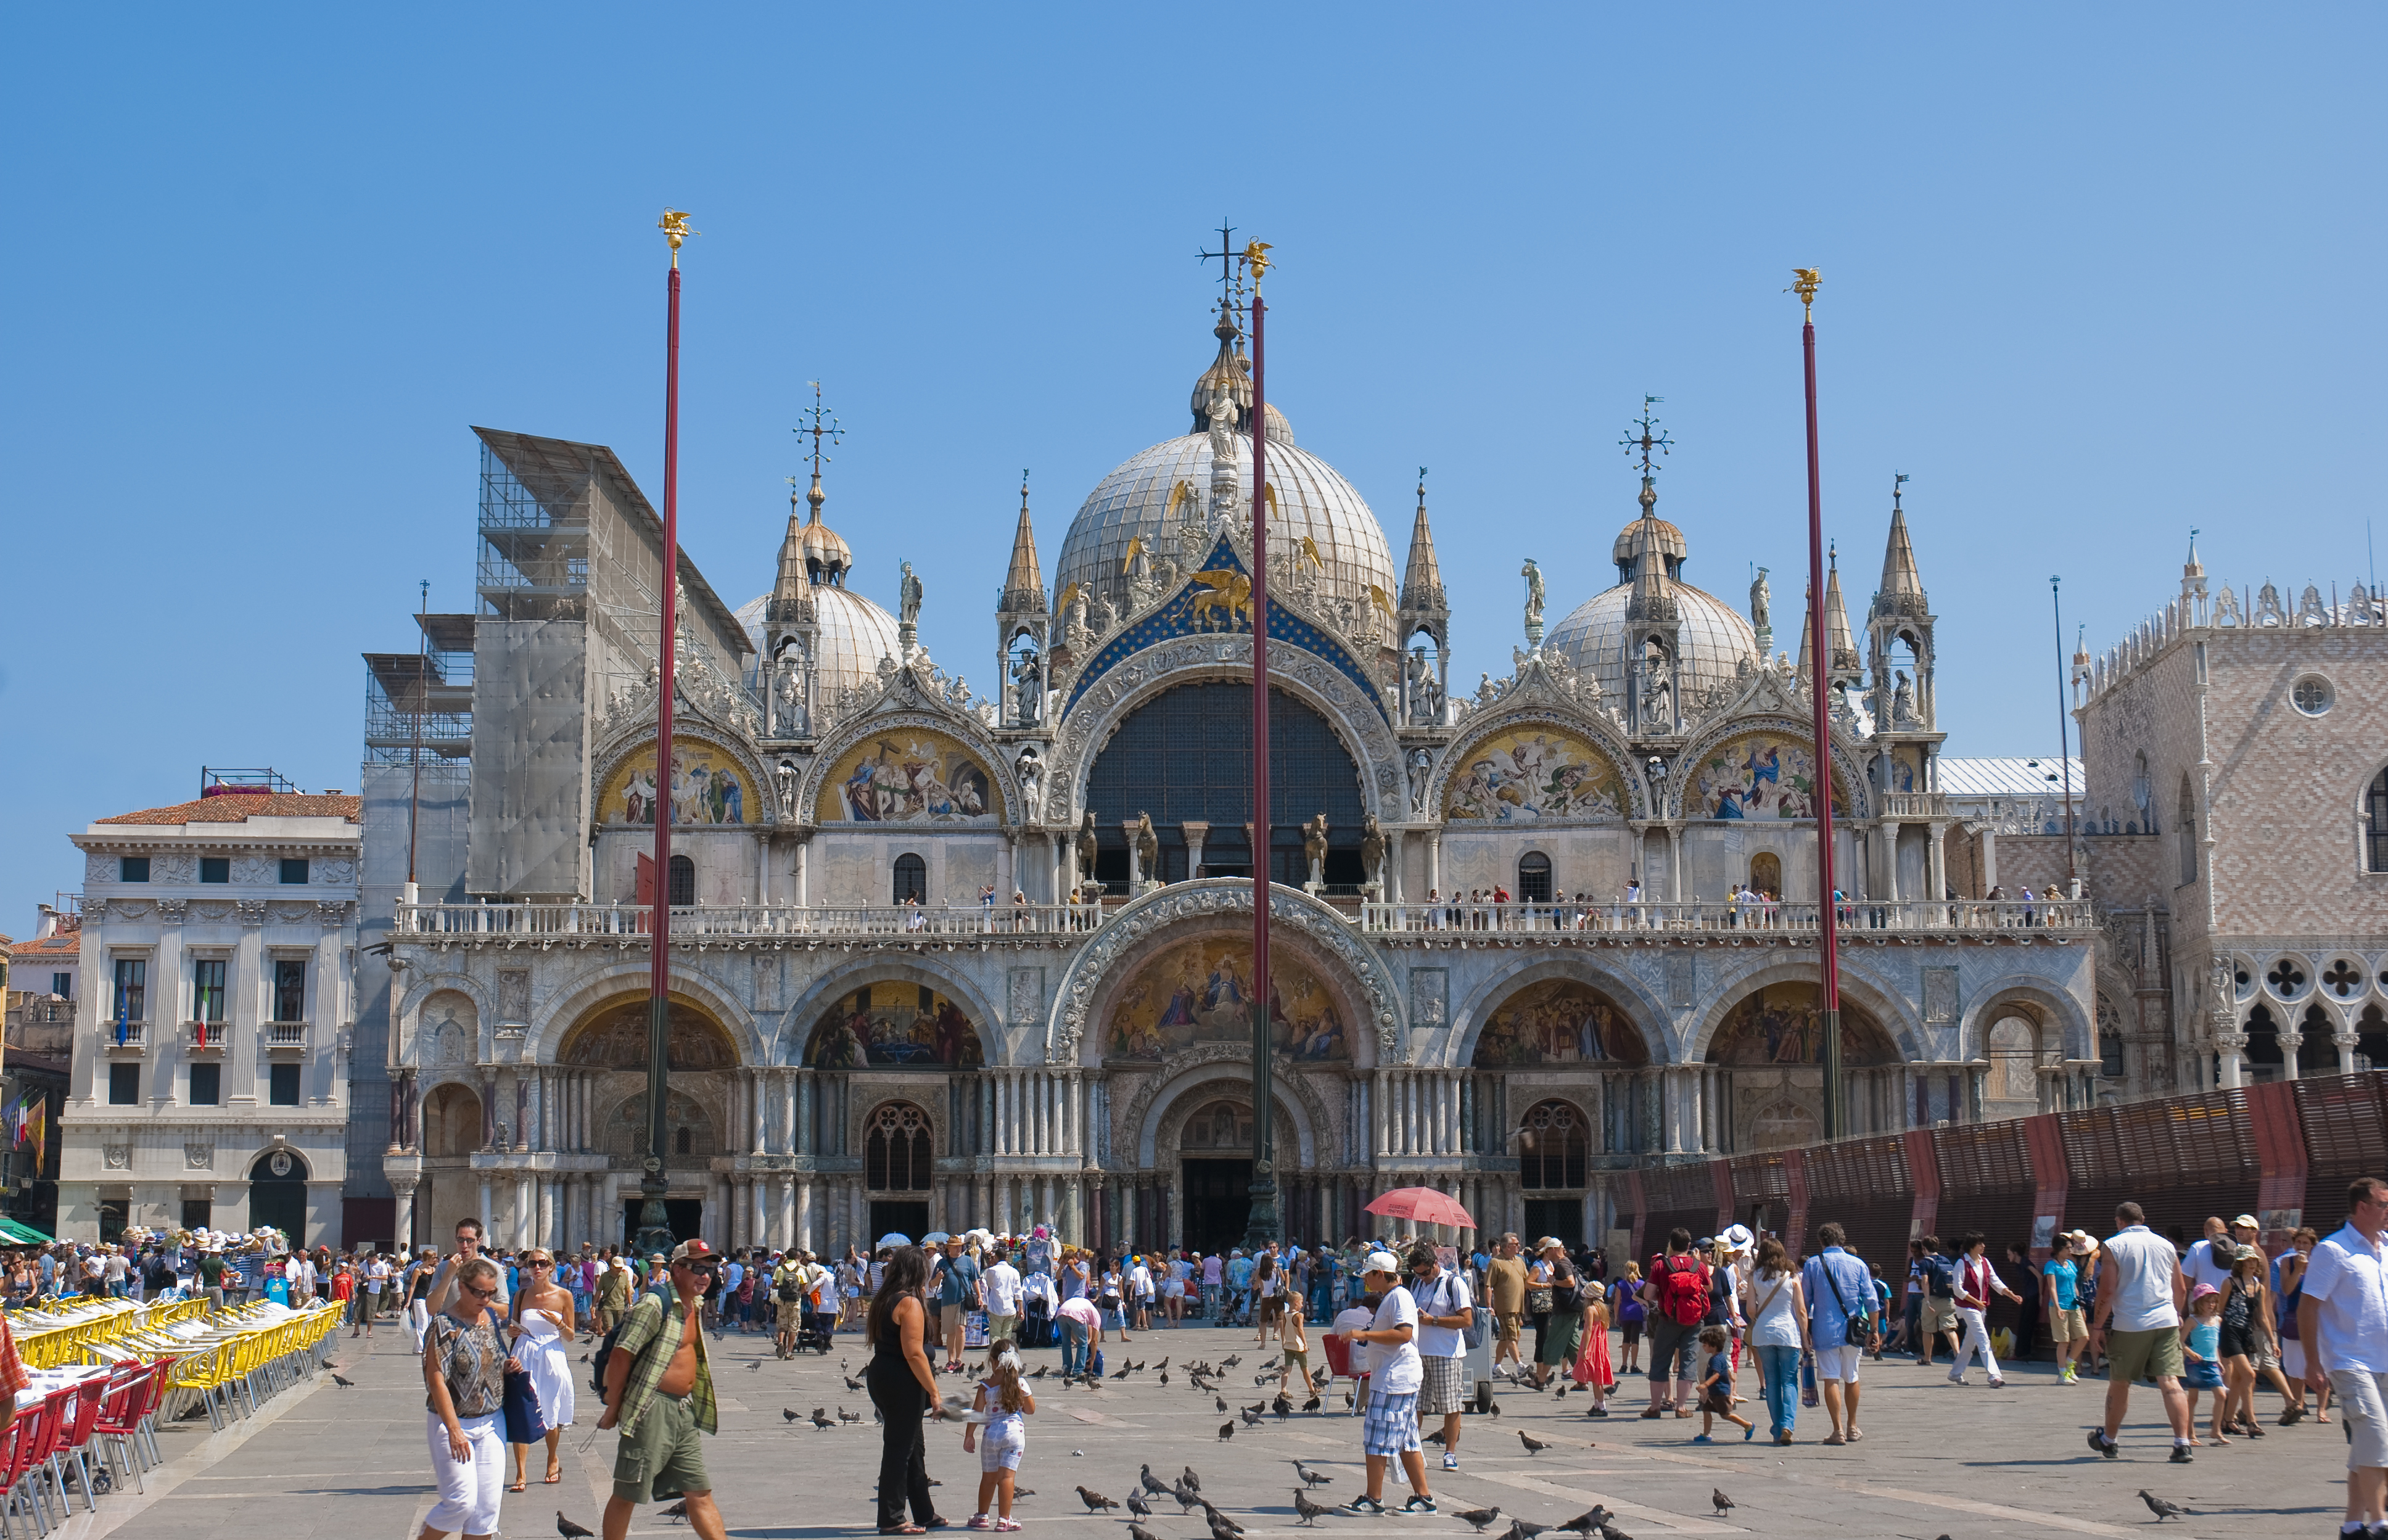 San Marco is a cathedral in Venice. Description, history and interesting facts